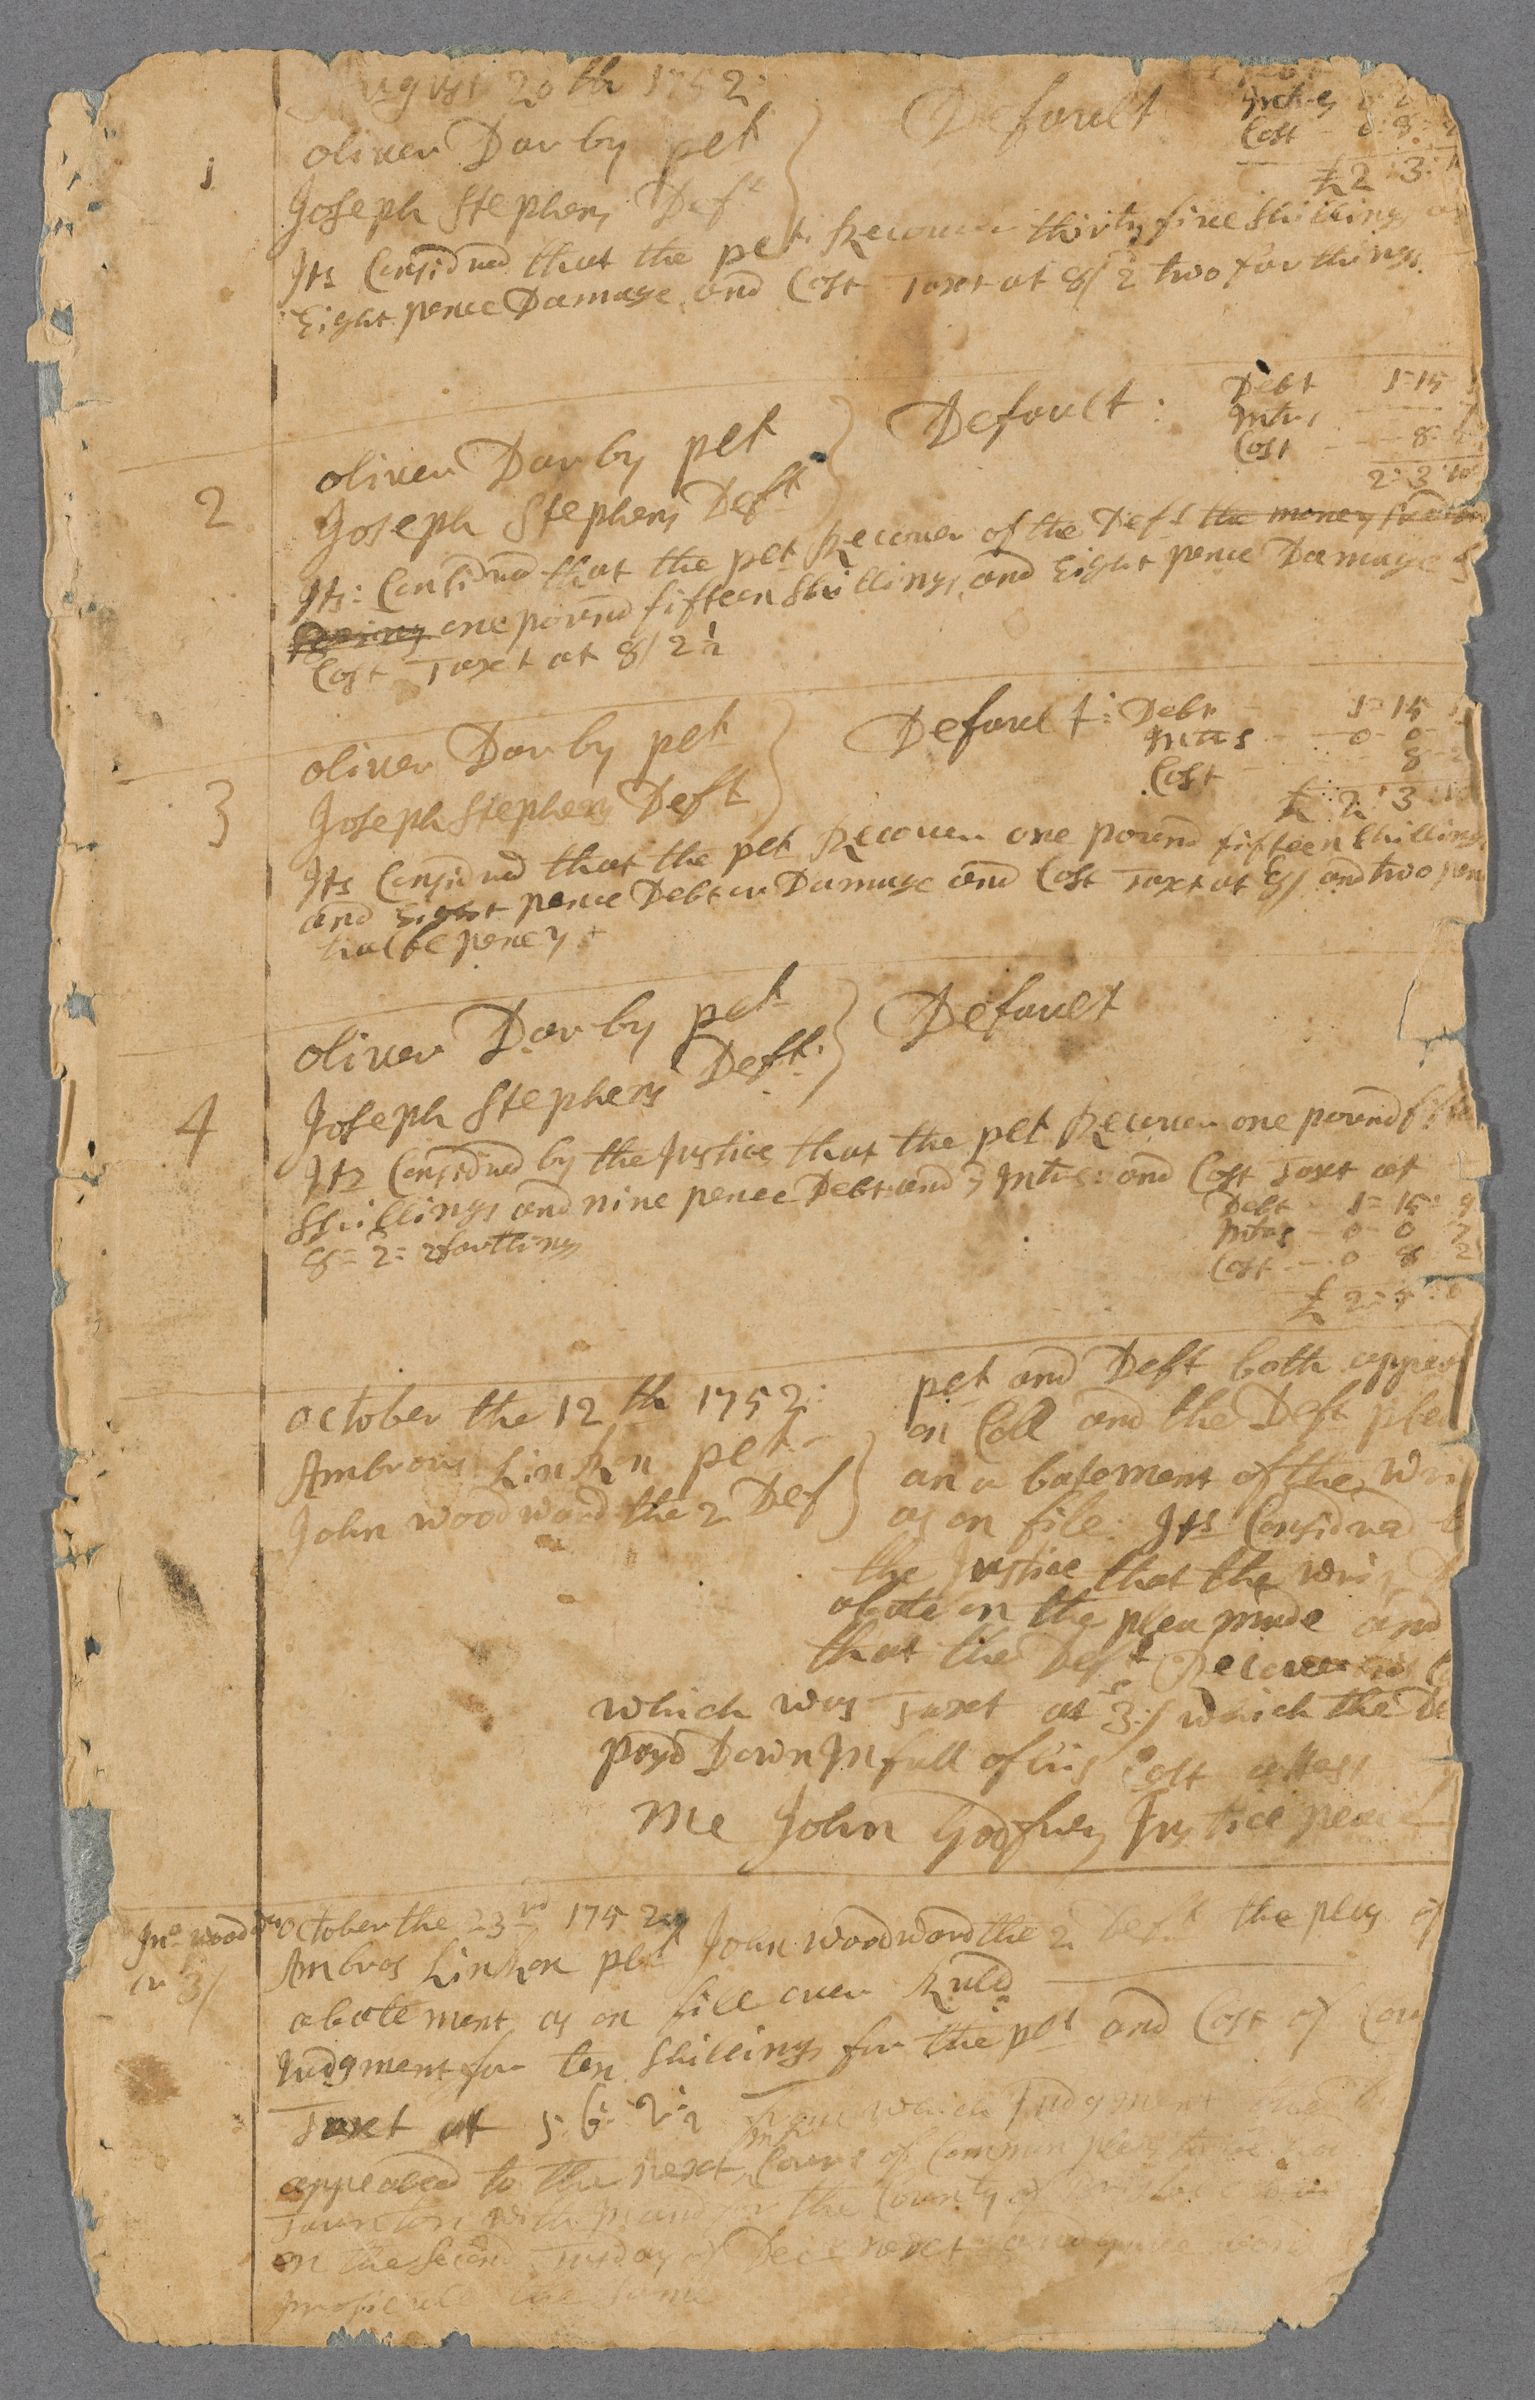 Papers of George Godfrey, 1739-1792